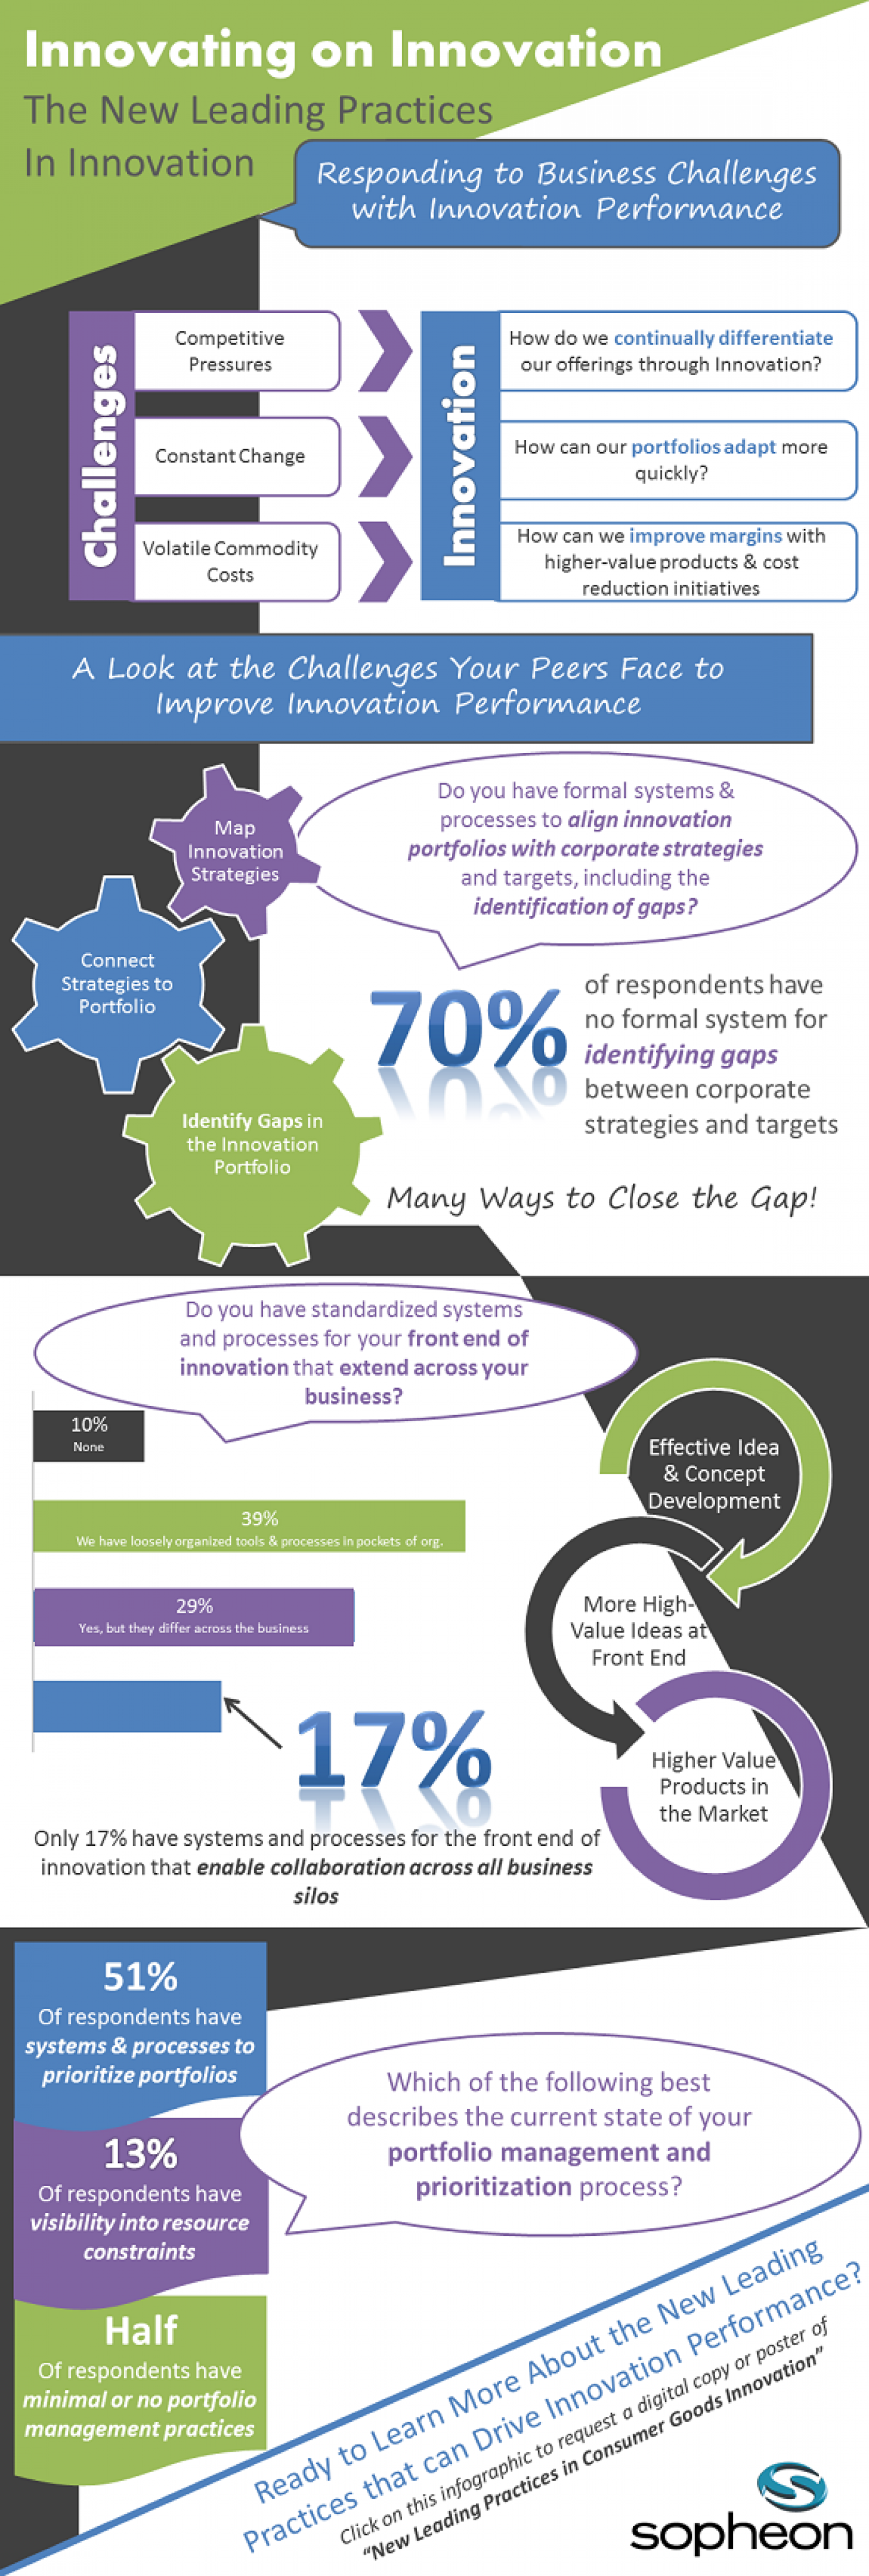 Innovating On Innovation: A Look At The Challenges Consumer Firms Face To Improve Innovation Performance Infographic